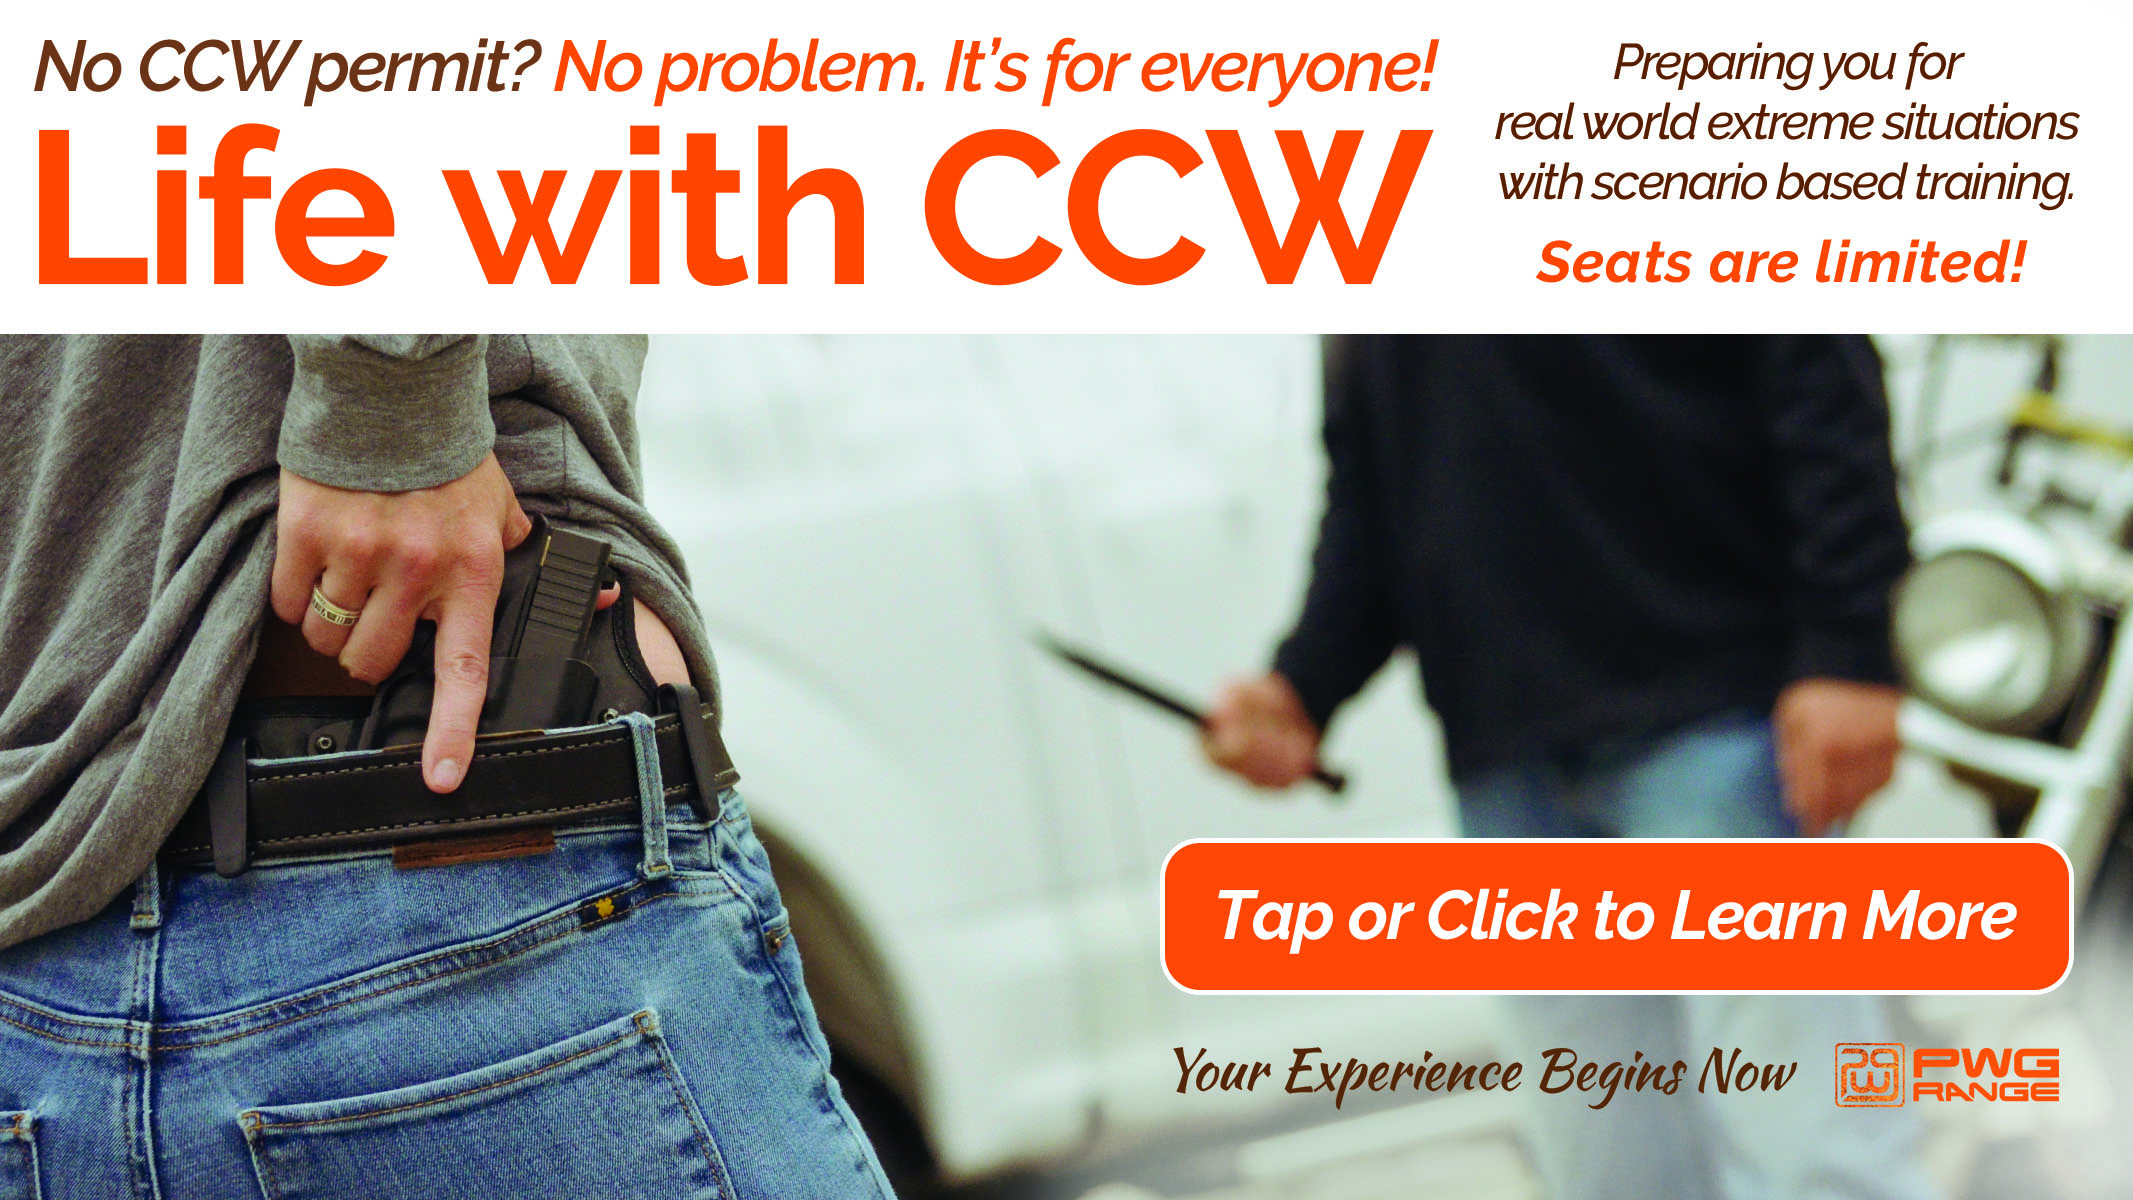 Learn More About Life With CCW